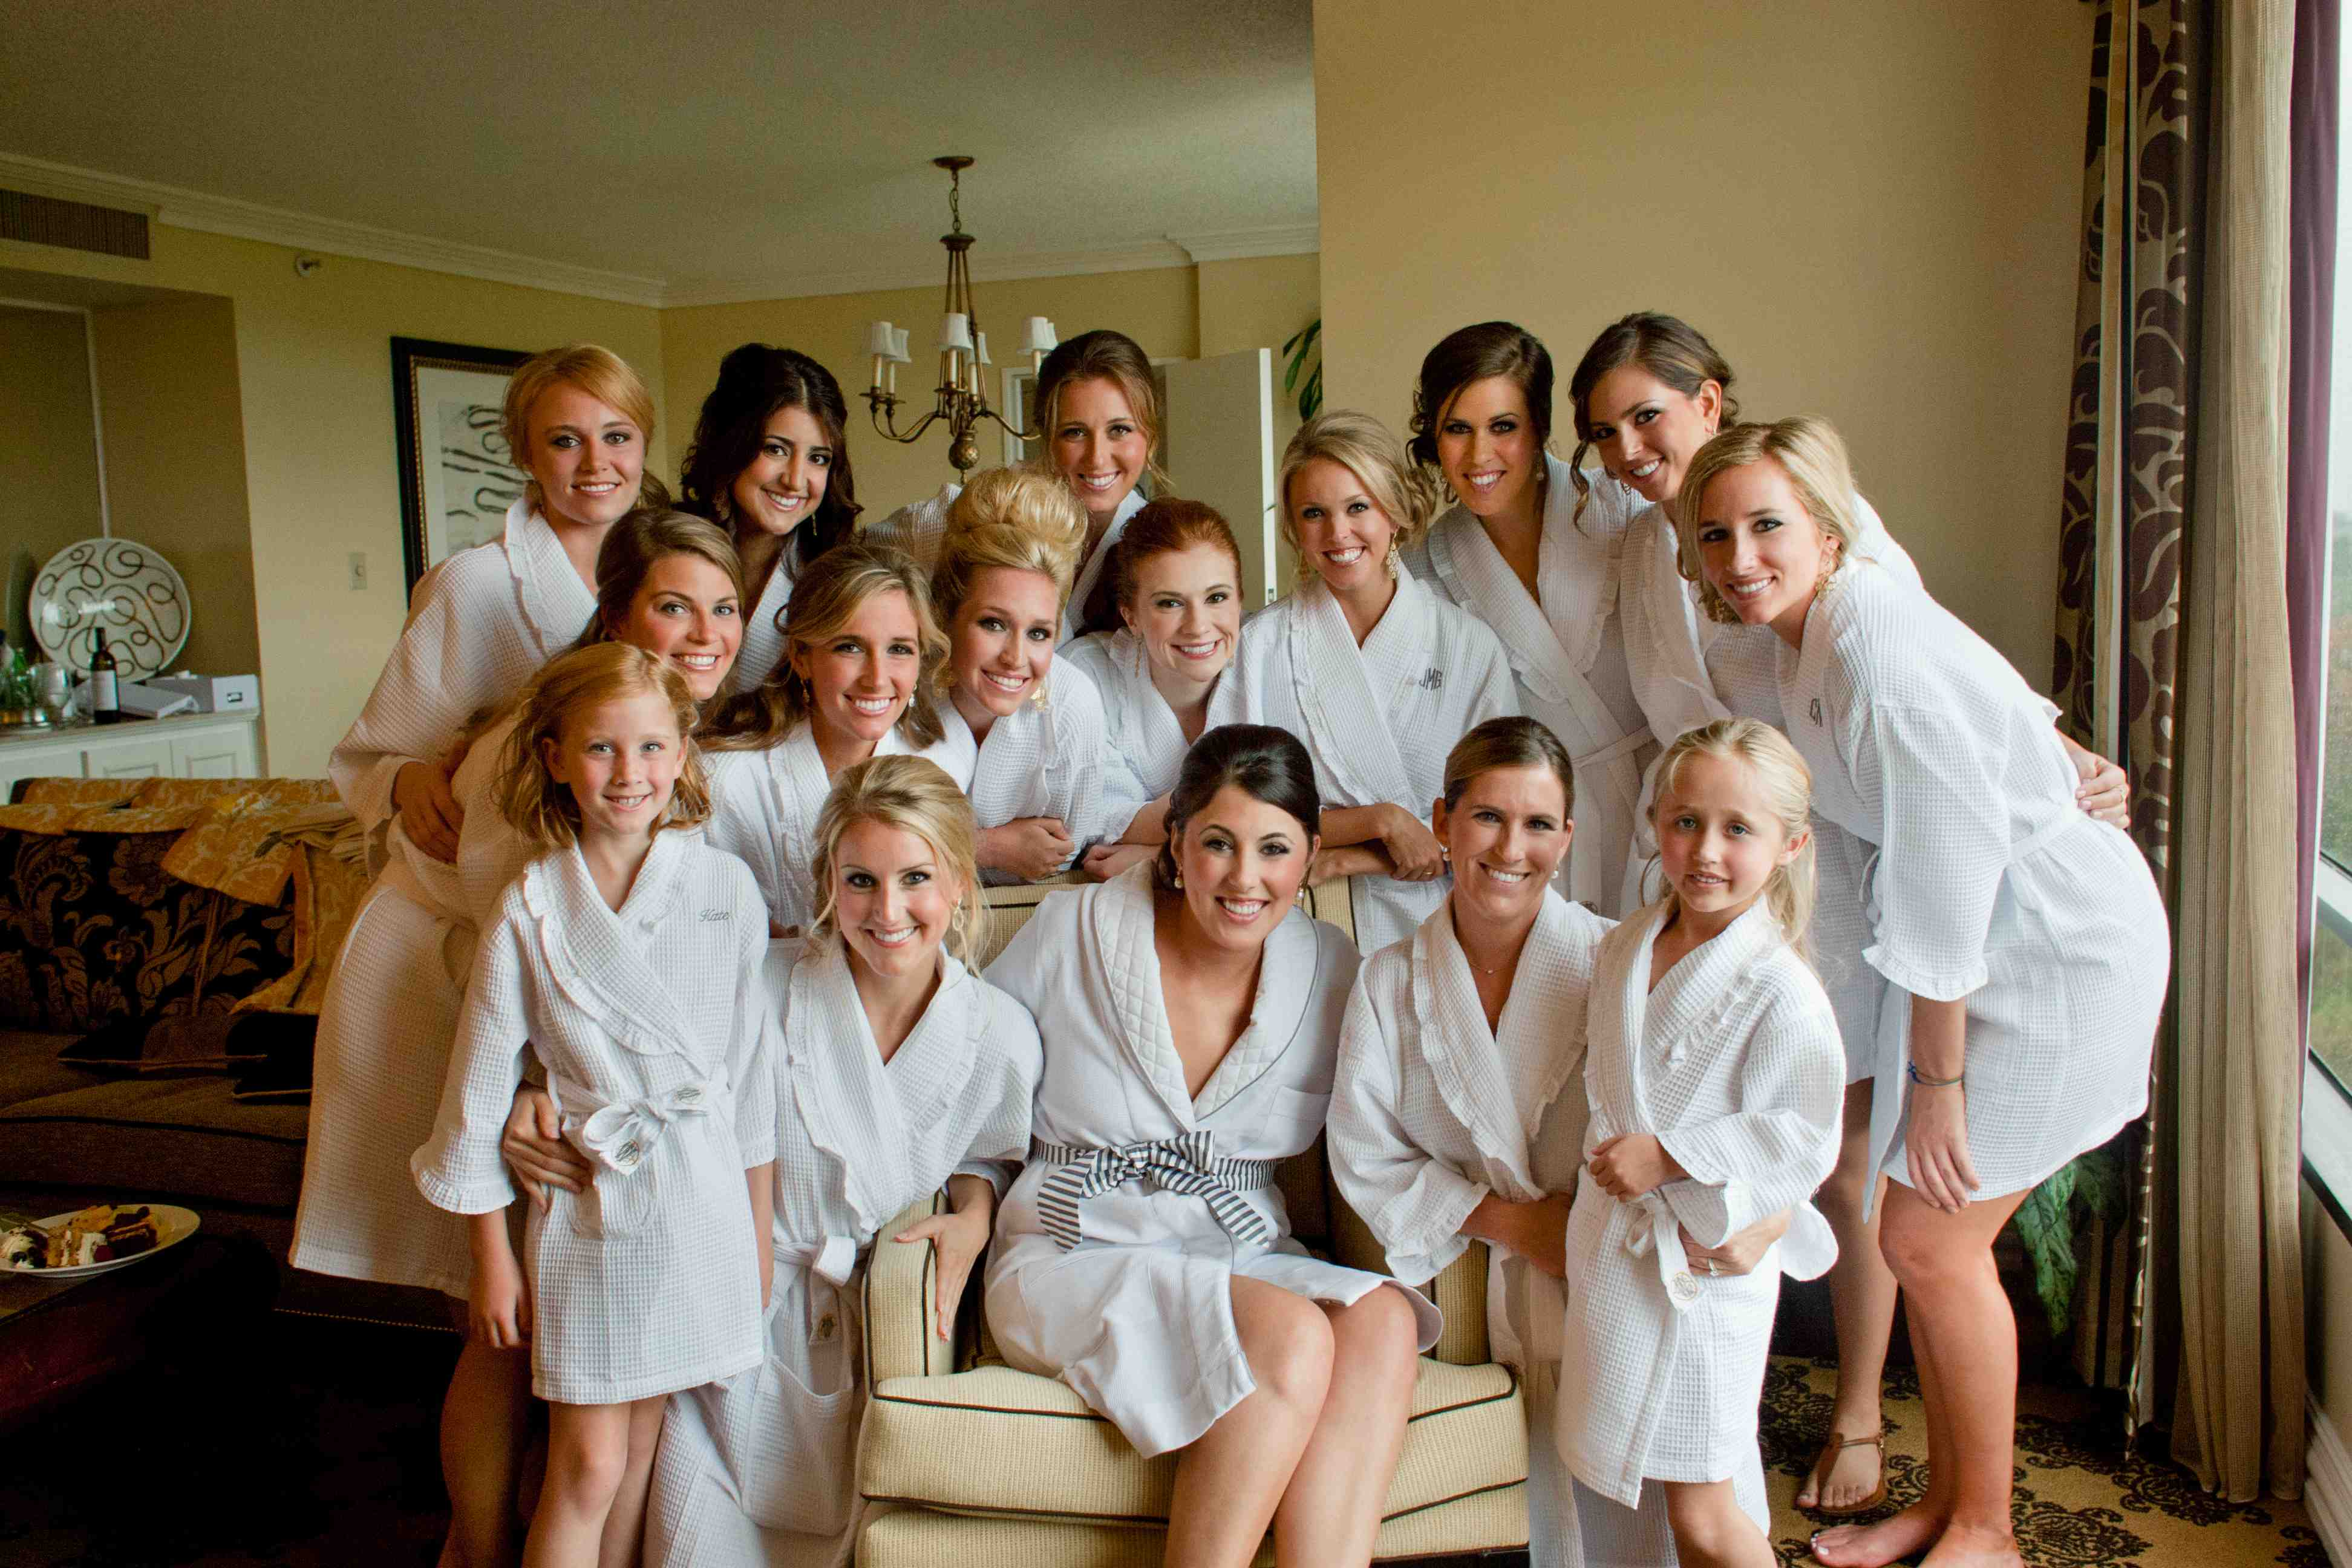 Bride and bridesmaids getting ready photos in white robes